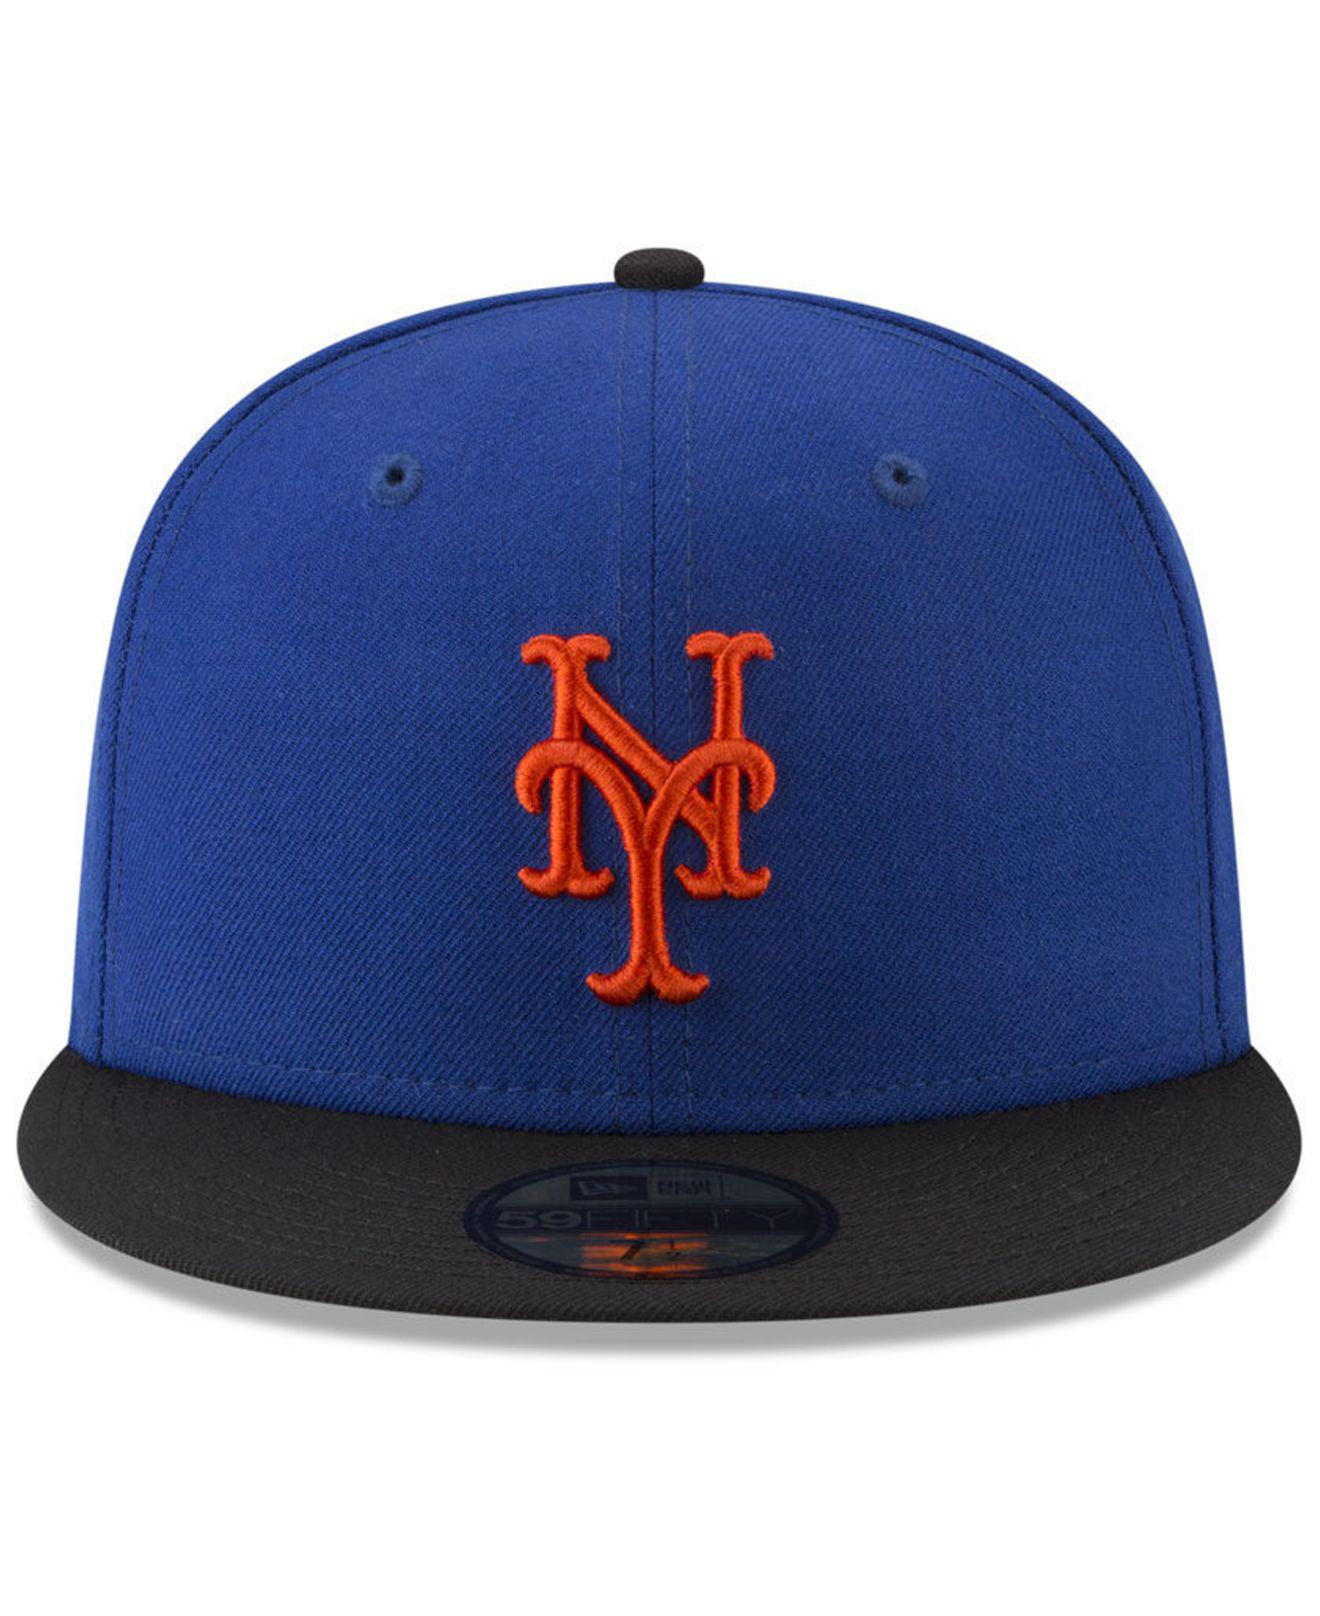 3f383a5b937 Lyst - KTZ New York Mets Batting Practice Wool Flip 59fifty Fitted Cap in  Blue for Men